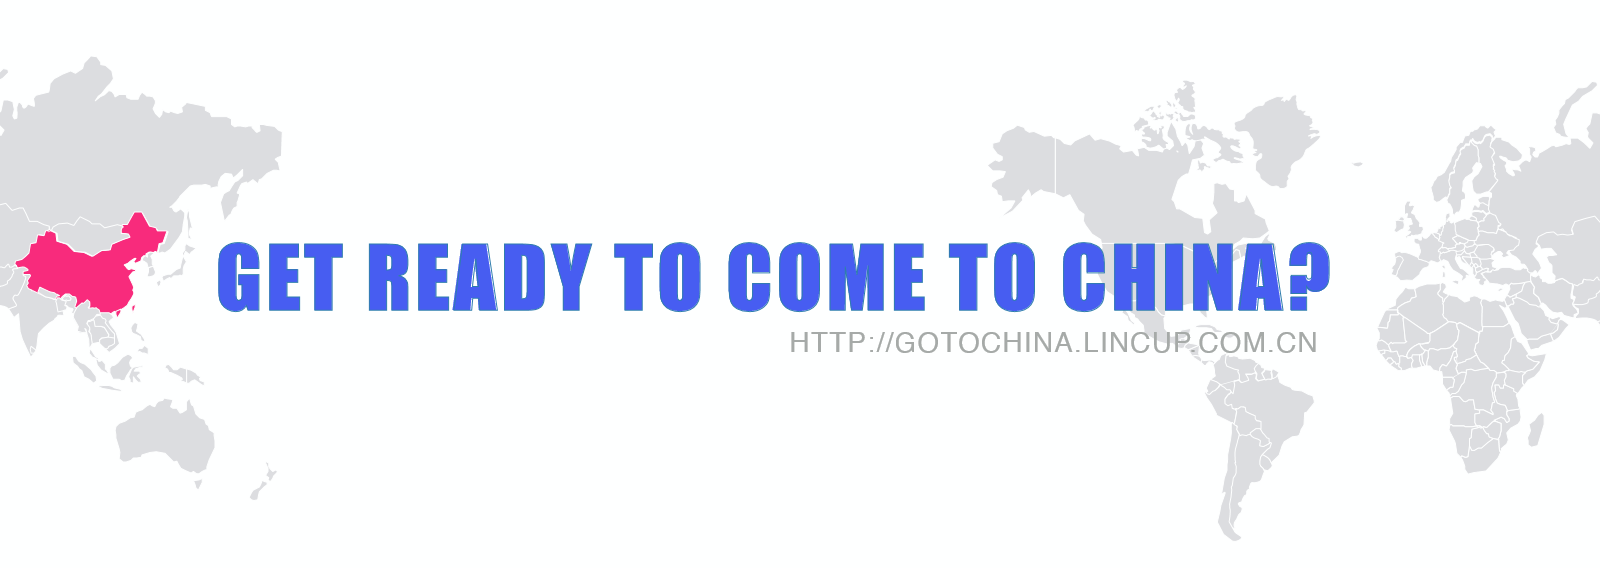 get ready to come to China?